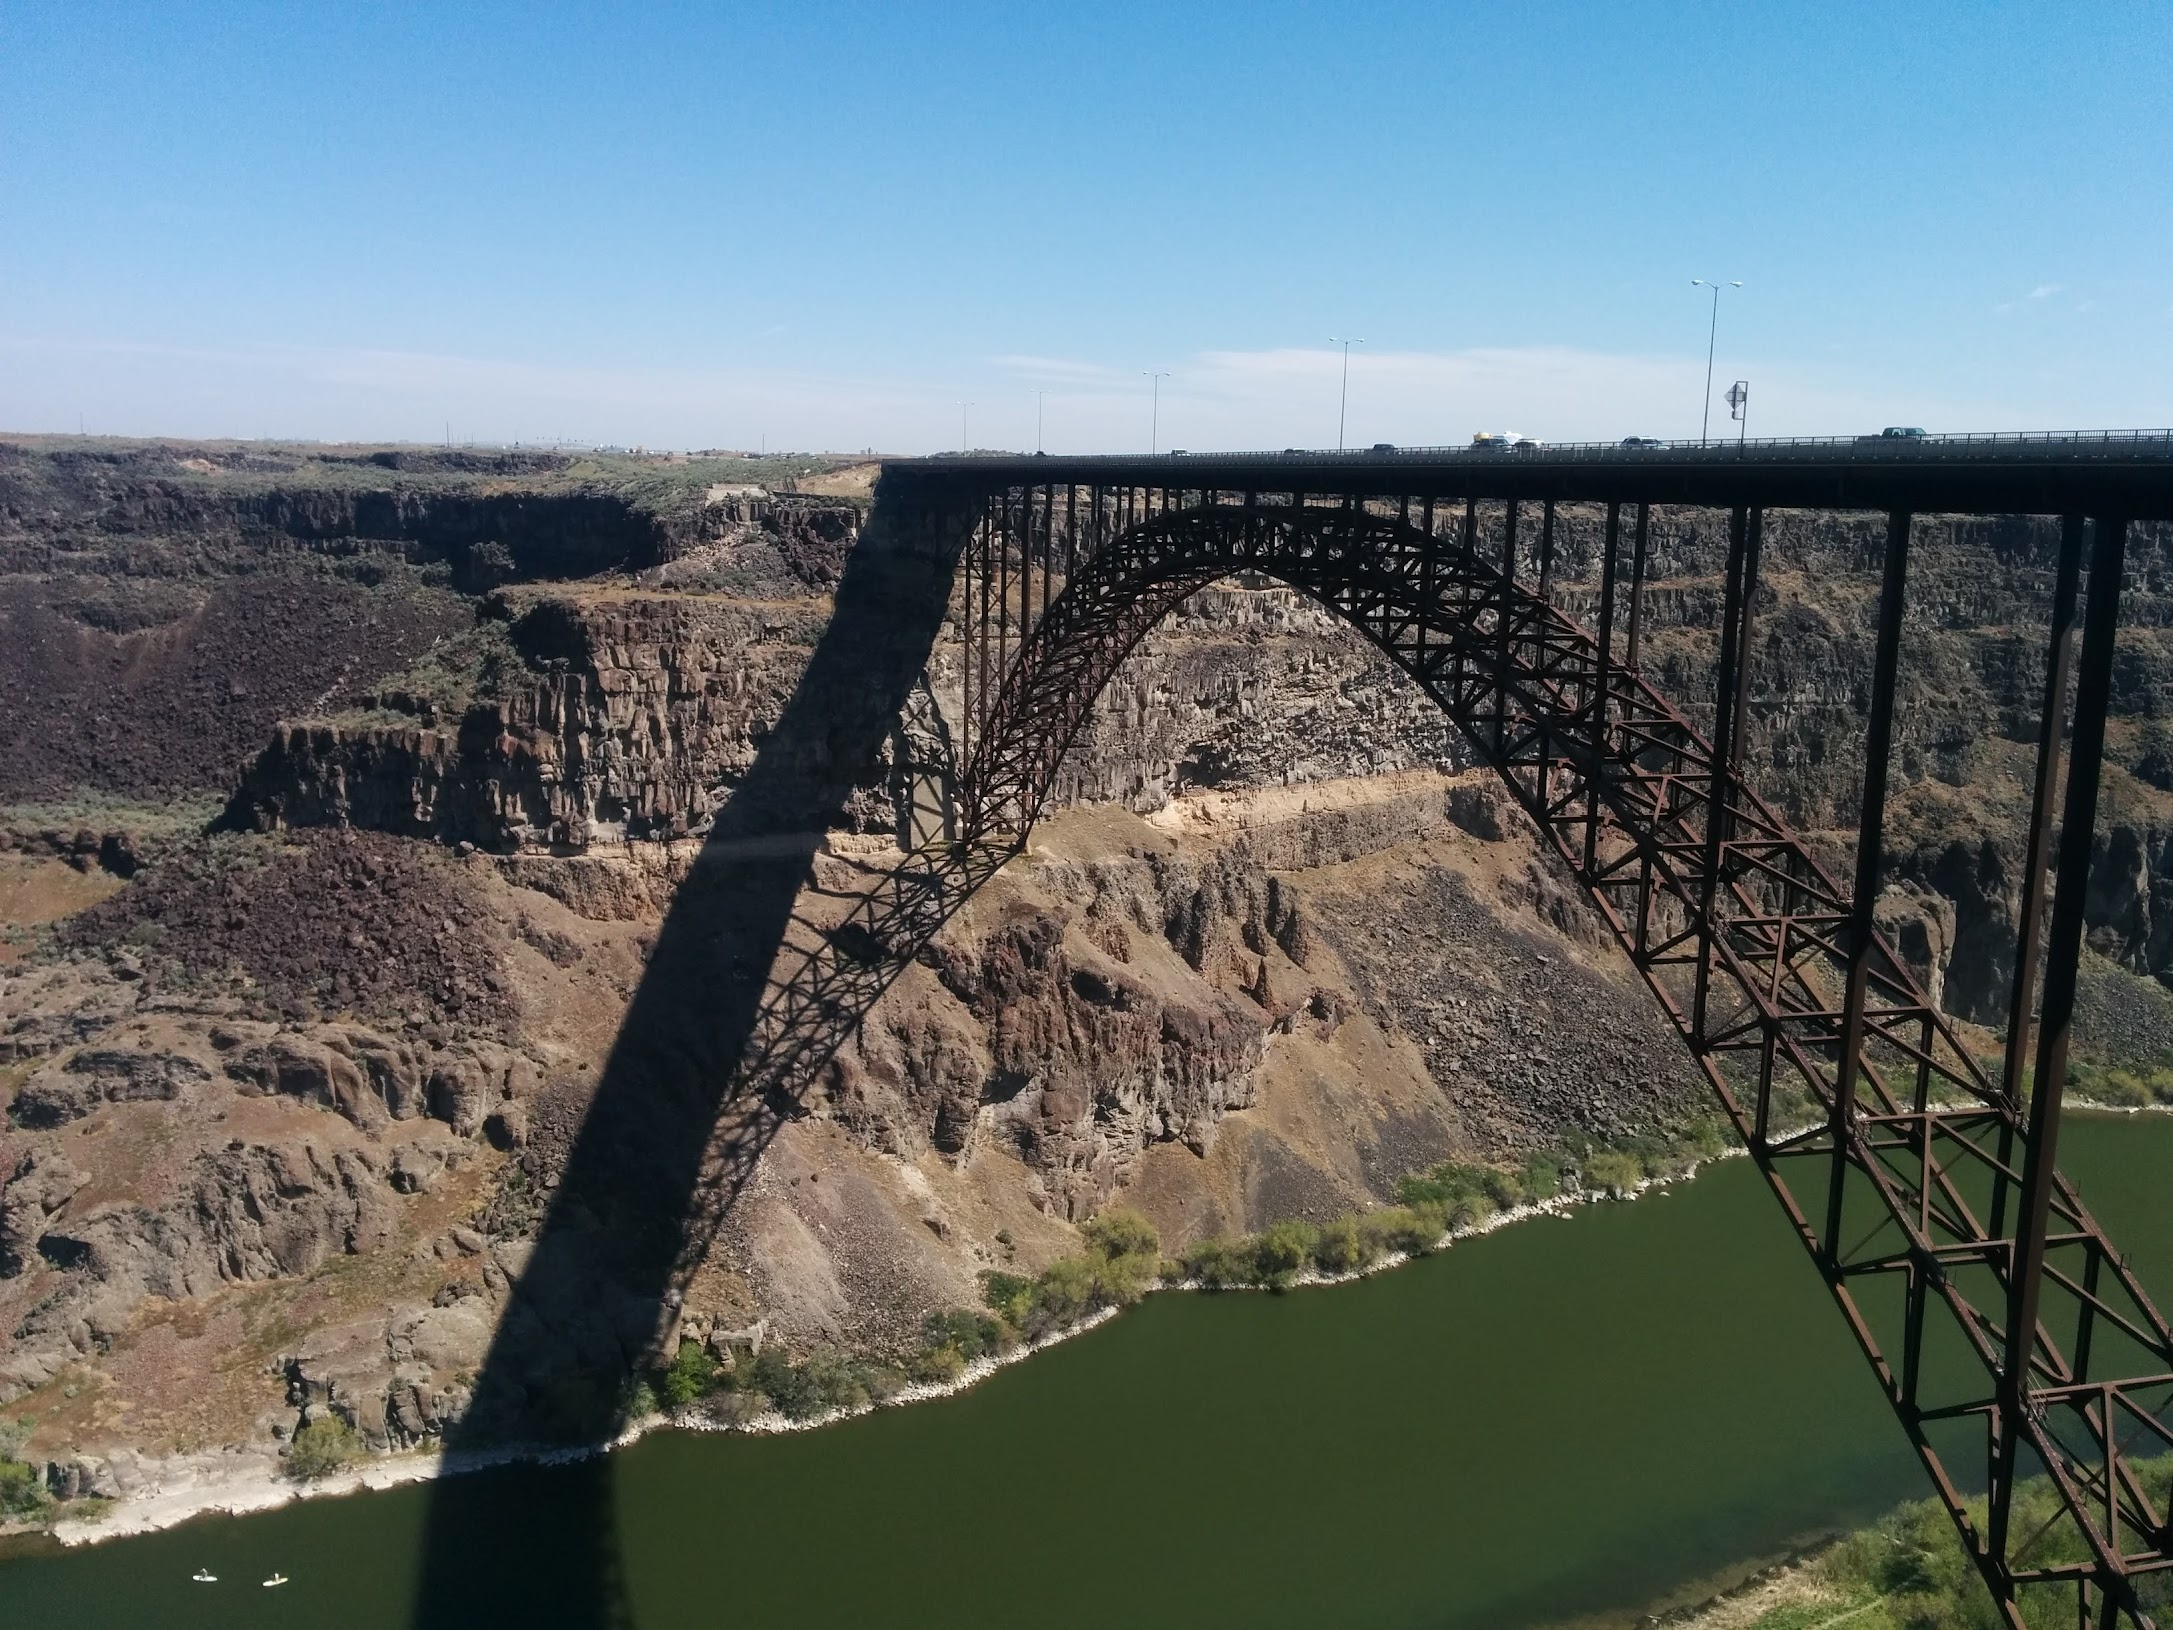 Idaho Archives Snake Skeleton Diagram Beautiful Scenery Photography The Bridge Itself Was We Walked To A Viewpoint Of Then Stopped Inside Visitors Center Modern Building With Big Windows And